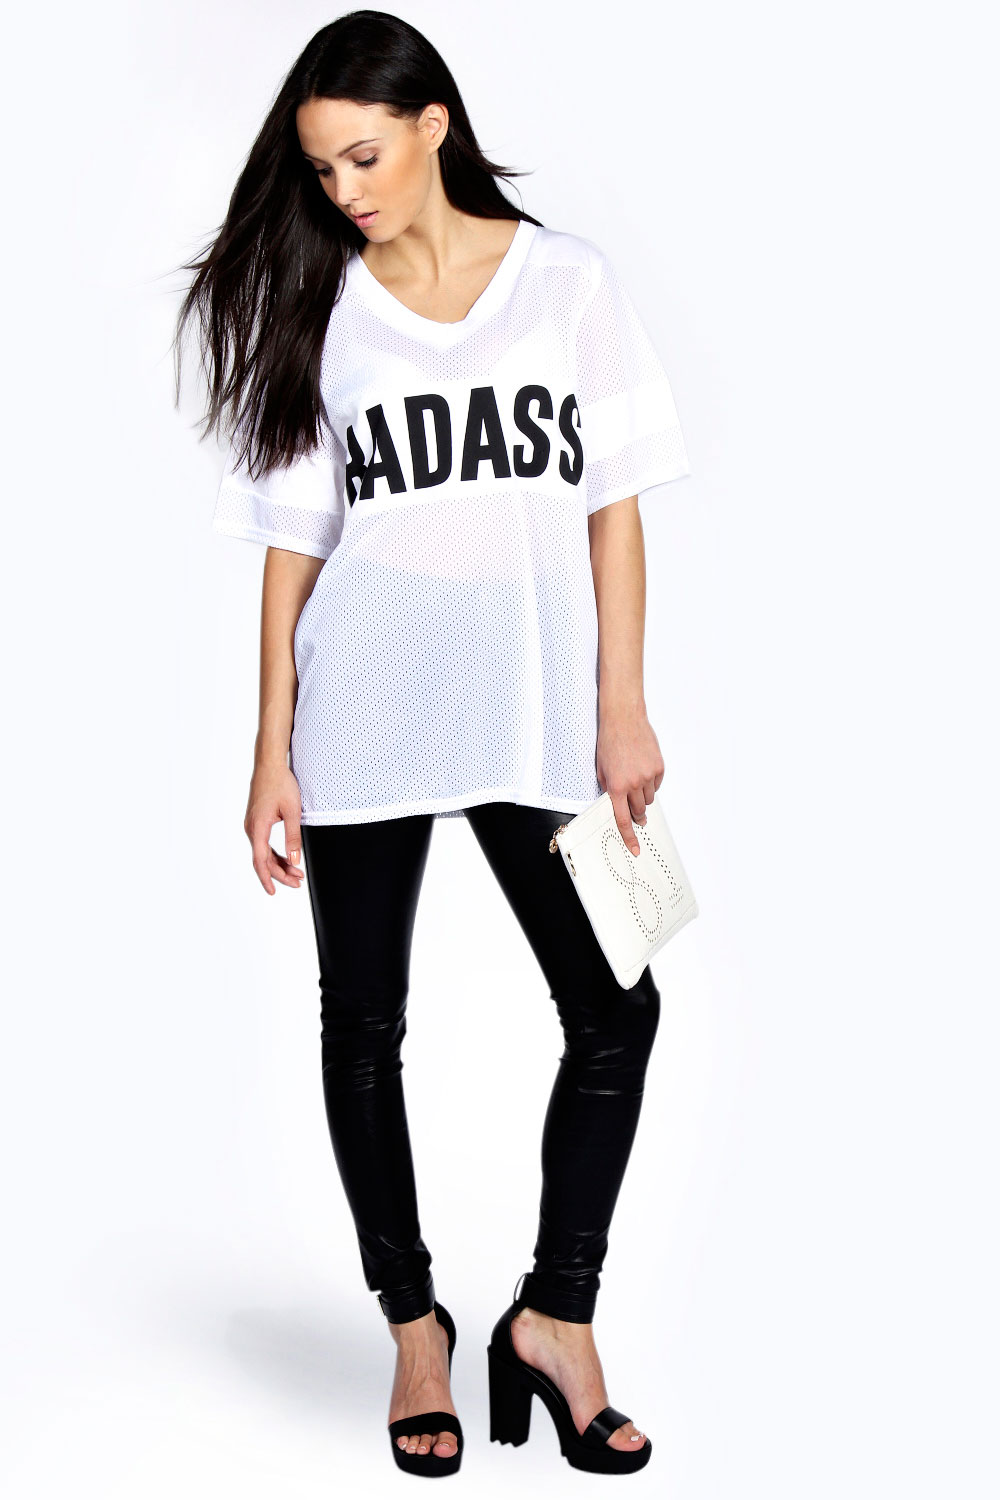 Anna Bad Ass Slogan Mesh Baseball Tee